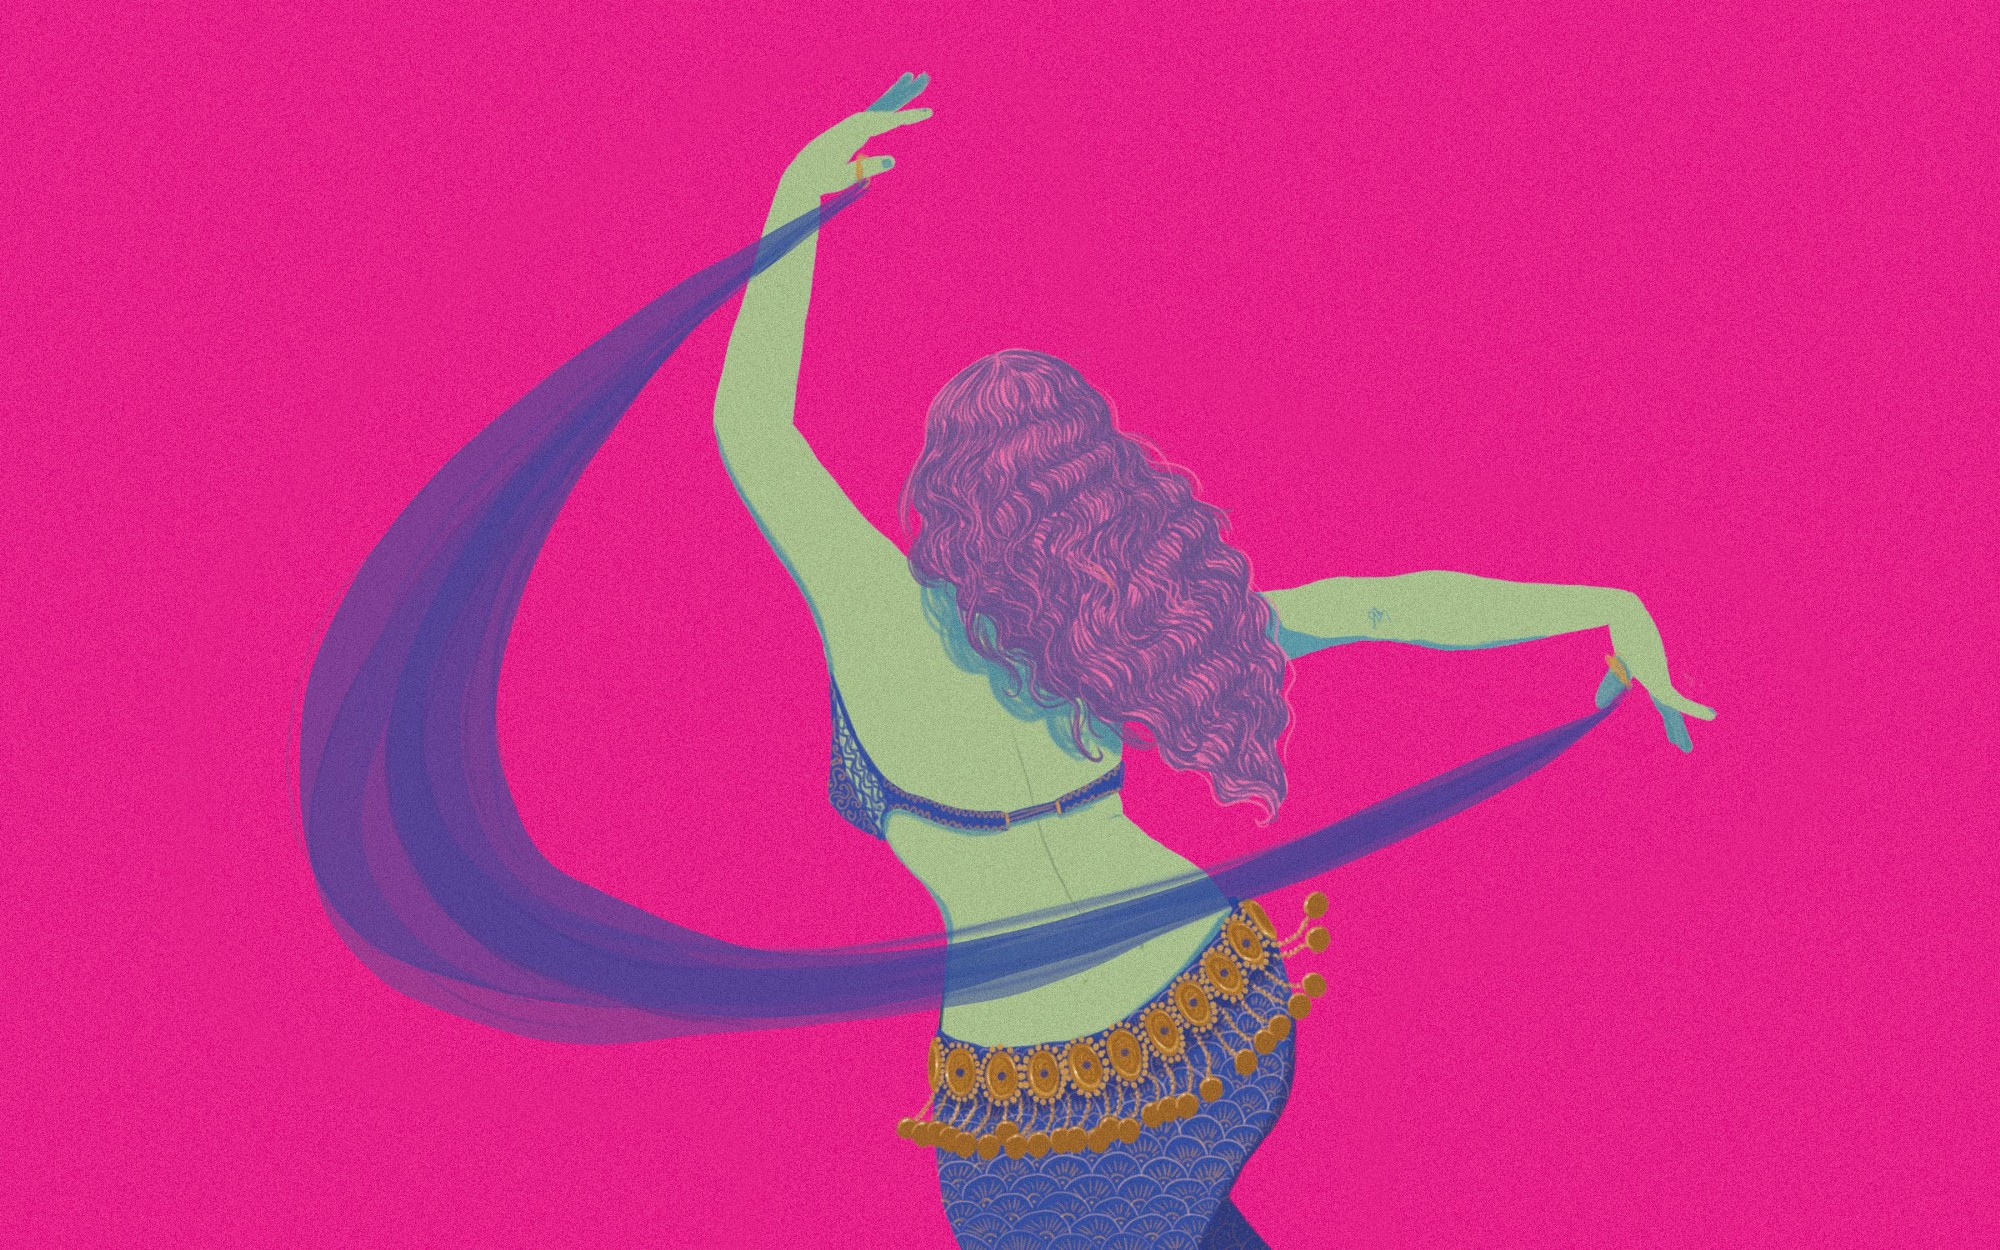 An illustration of the back of a woman belly dancing, against a deep fuschia background.